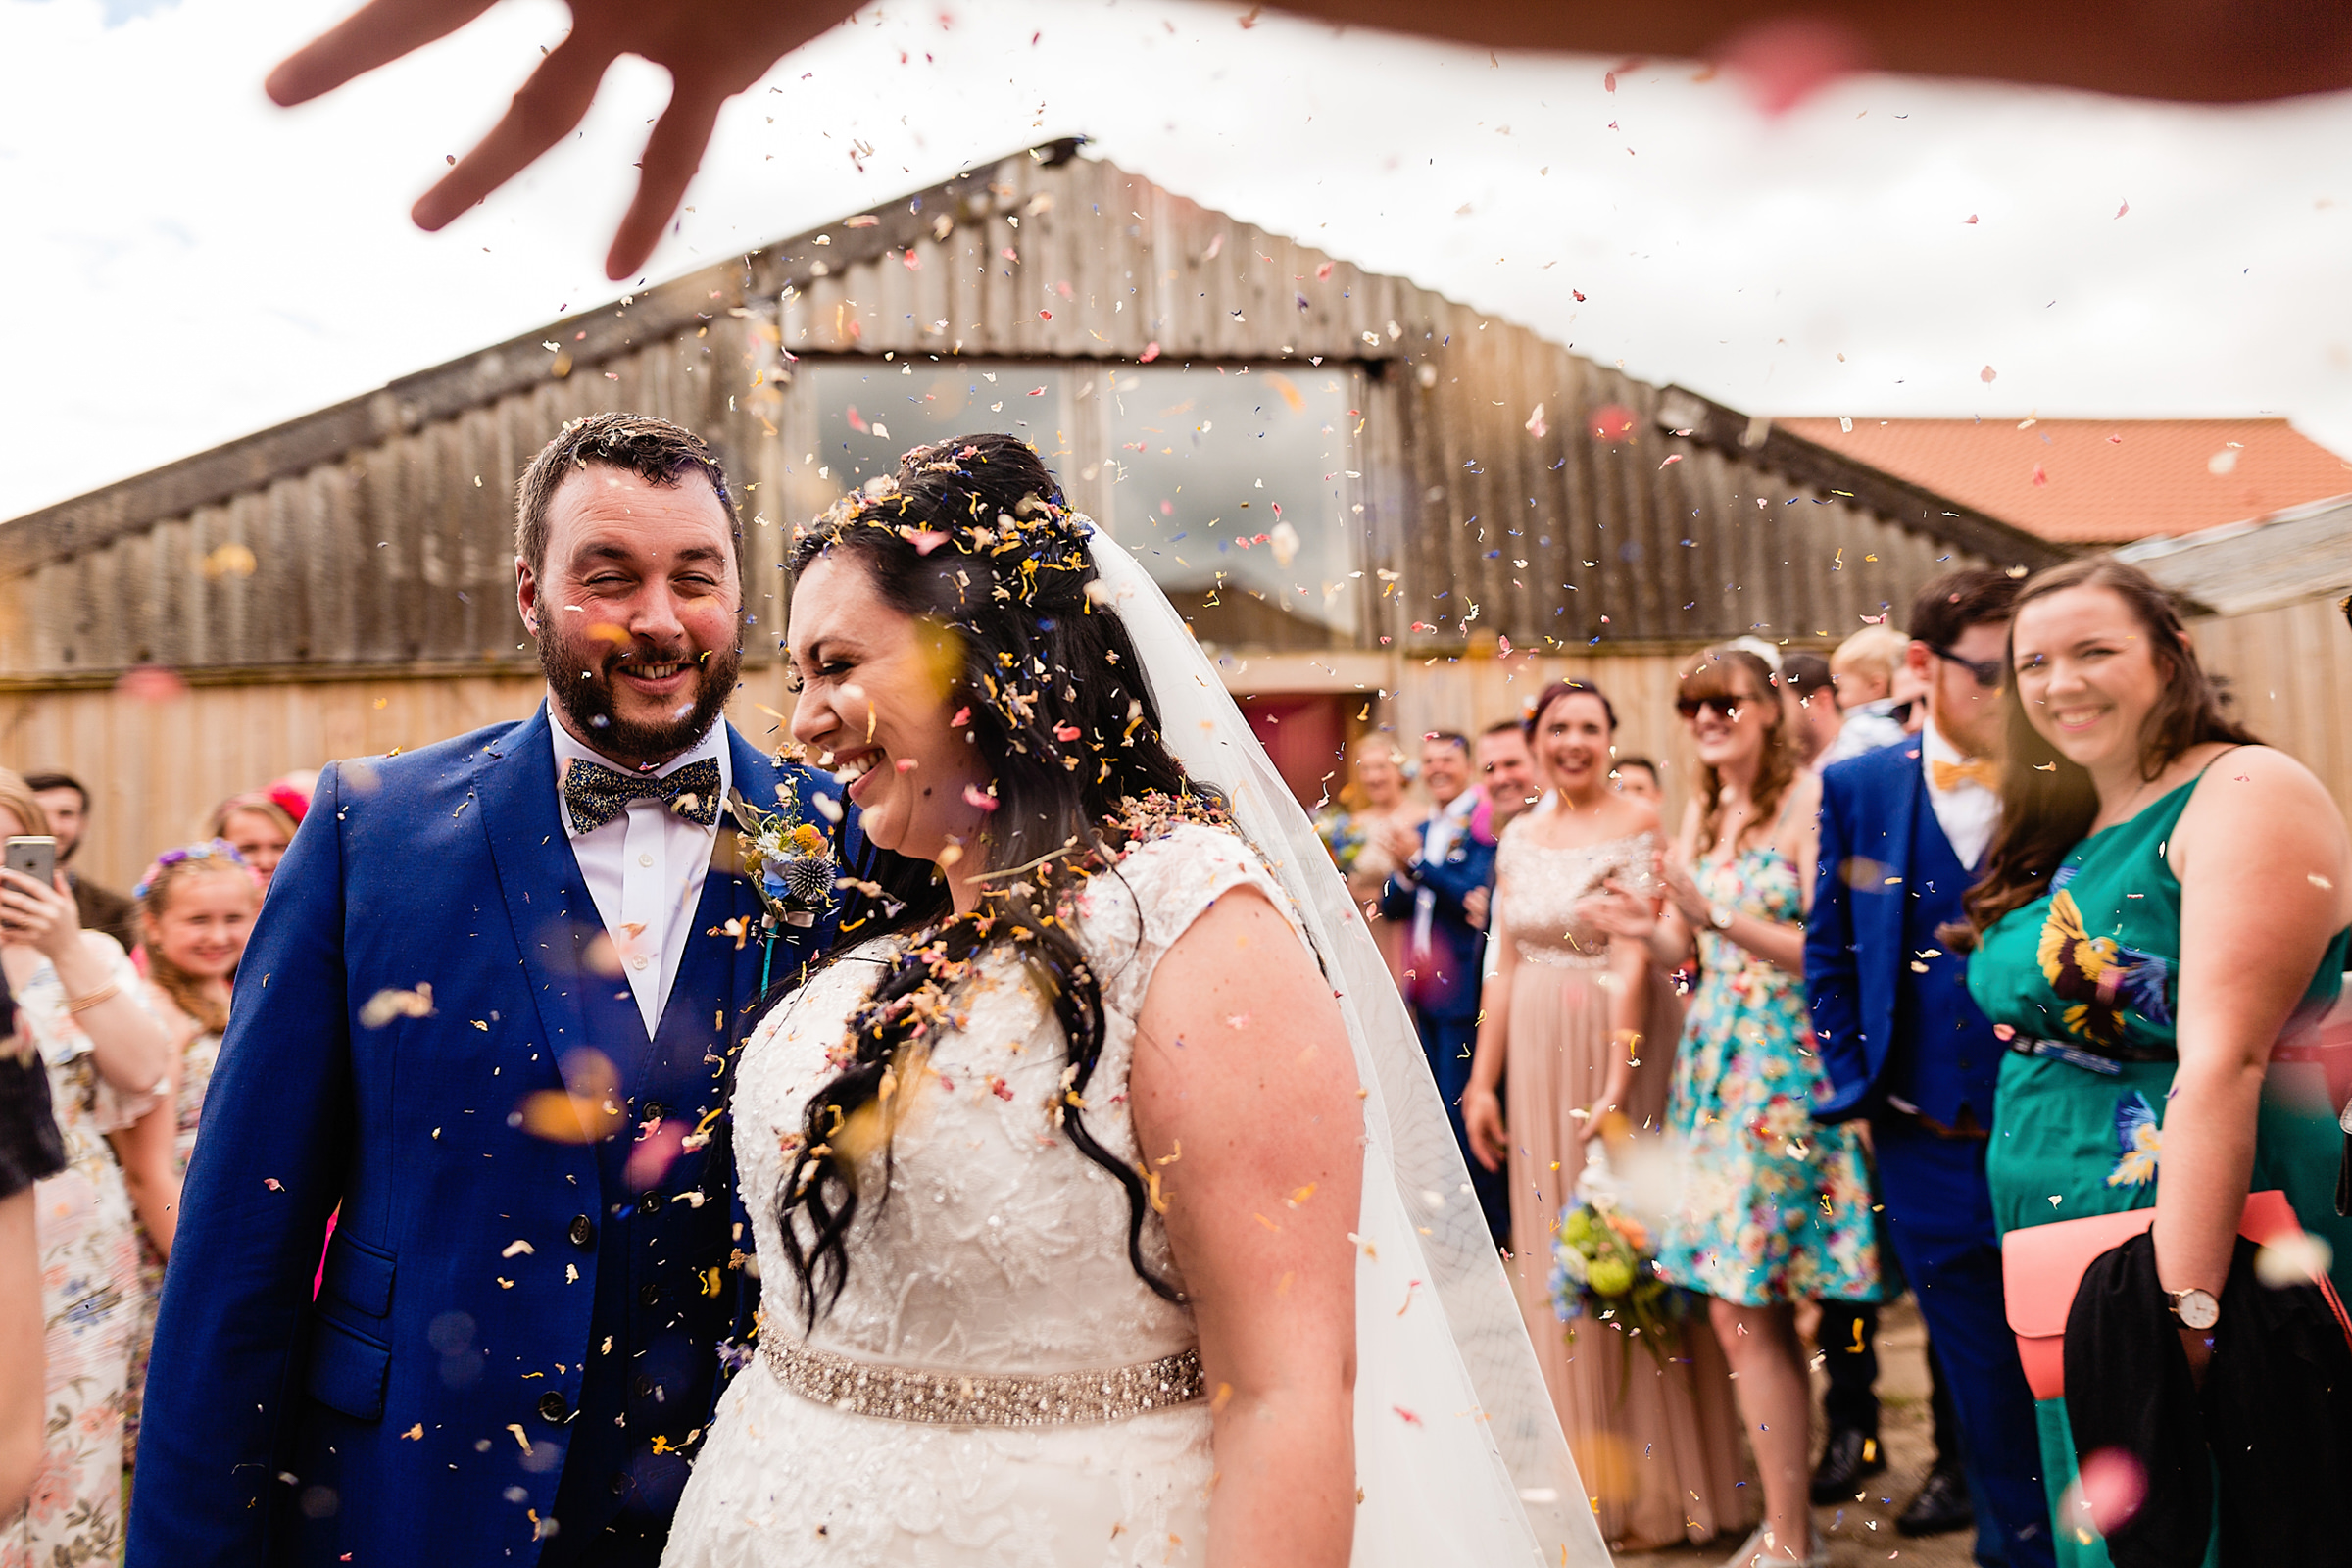 Creative composition of confetti recessional - photo by Emma + Rich